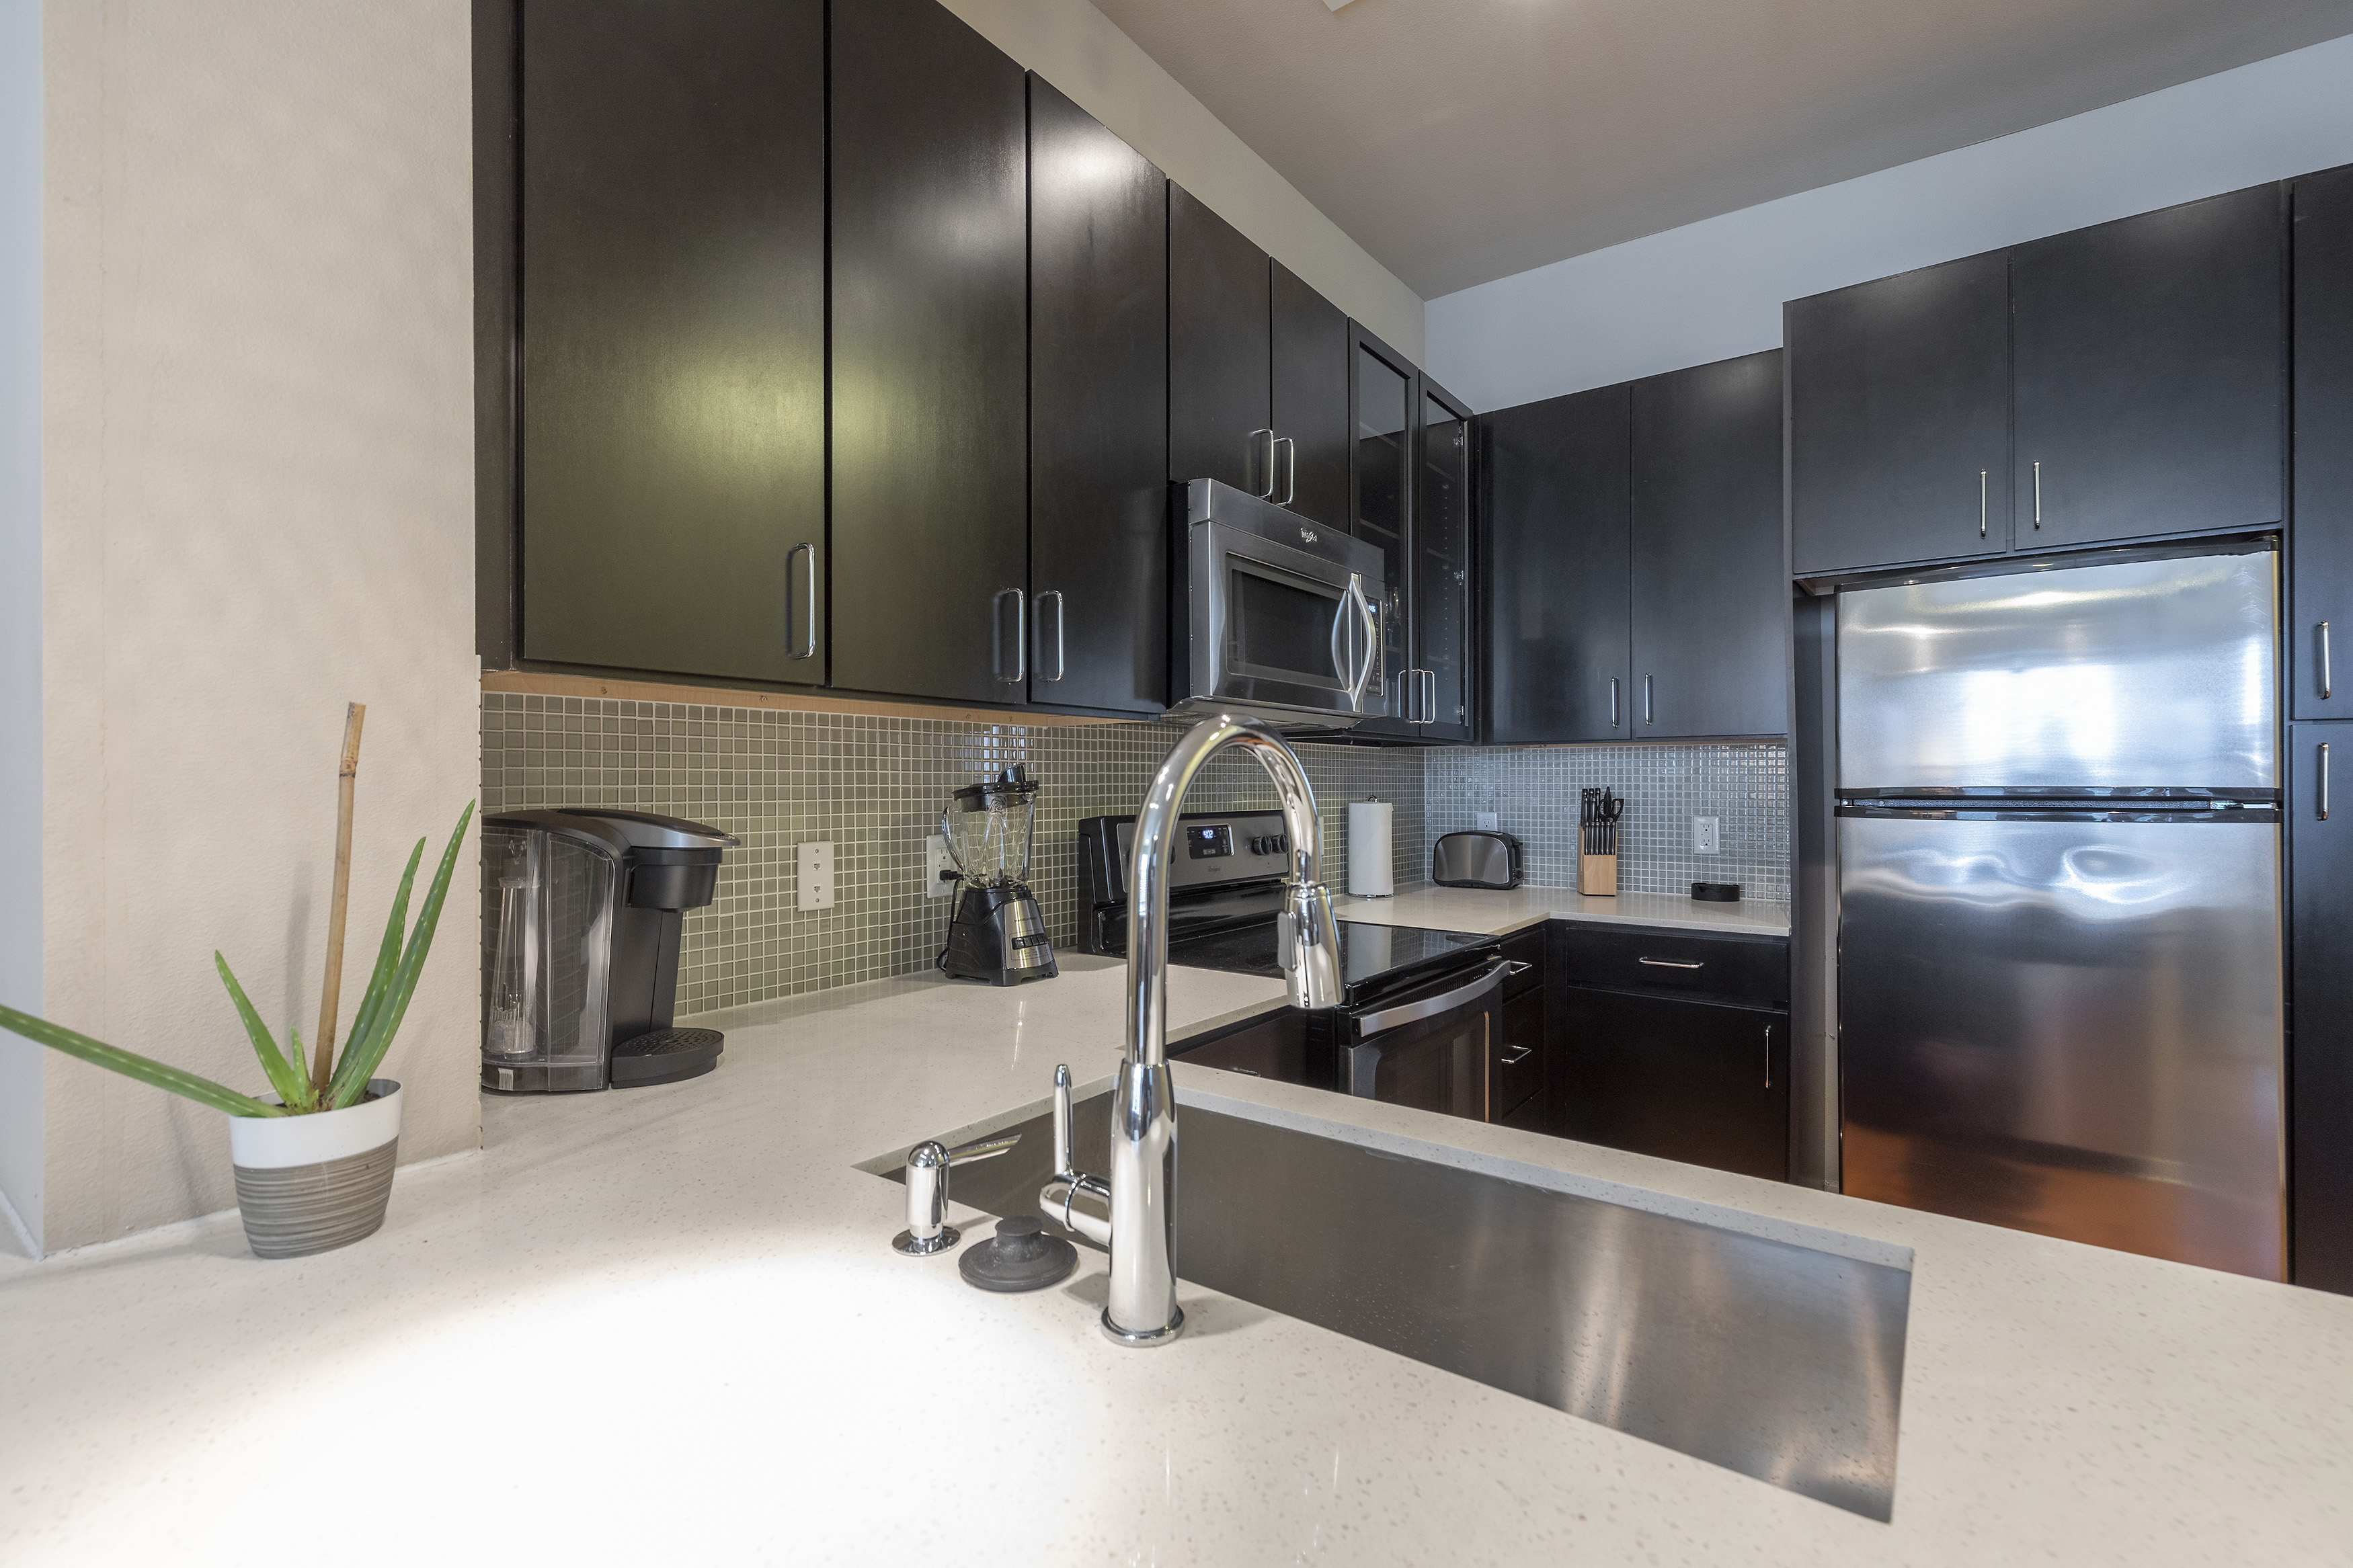 Apartment LUXURIOUS KING SIZED BED MED CENTER FULLY EQUIPPED CONDO photo 21440870